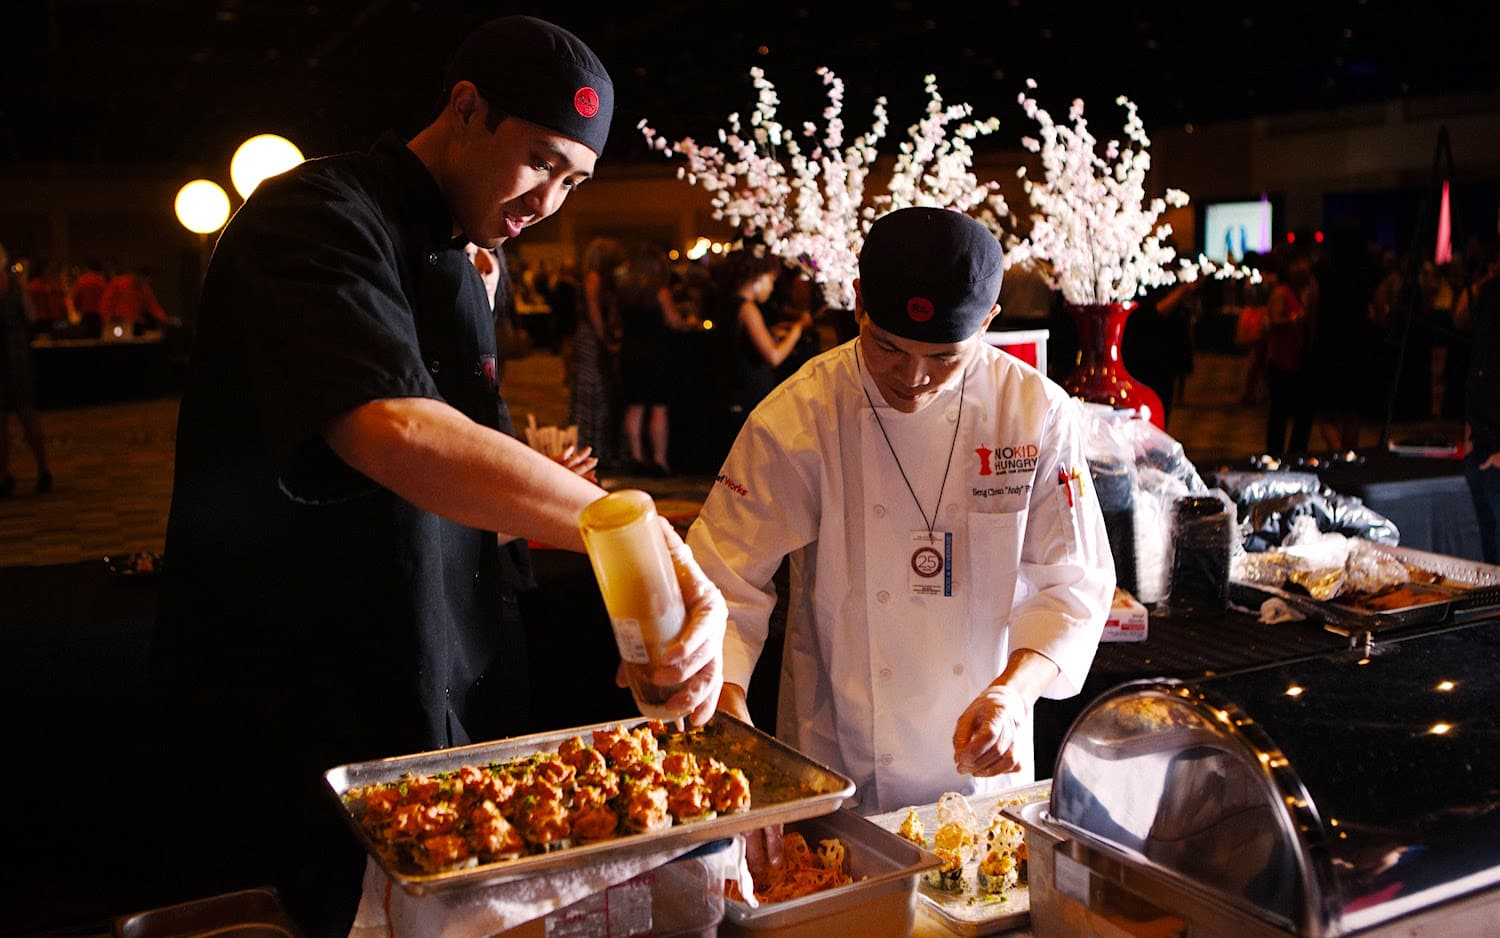 Orlando's Taste of the Nation 2016 | Making a Difference